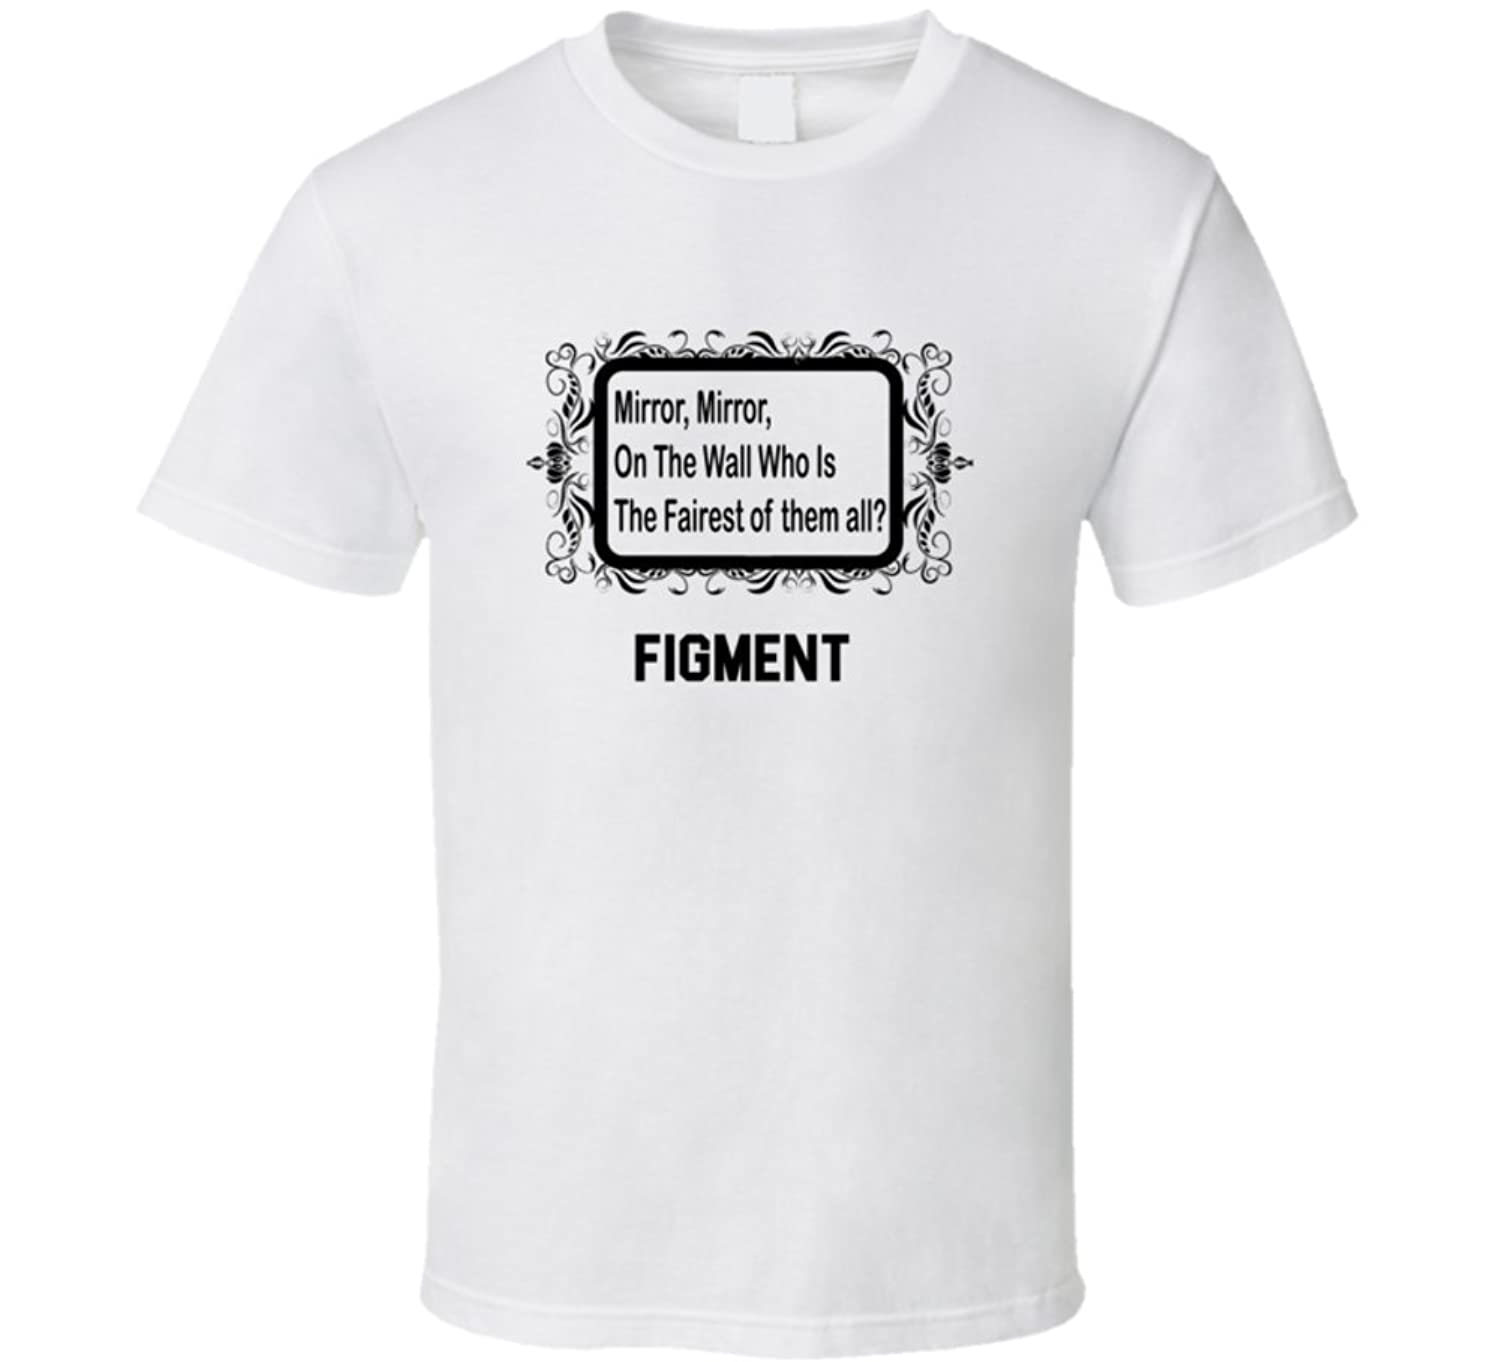 Figment is the Fairest Mirror, Mirron on the Wall Parody T shirt